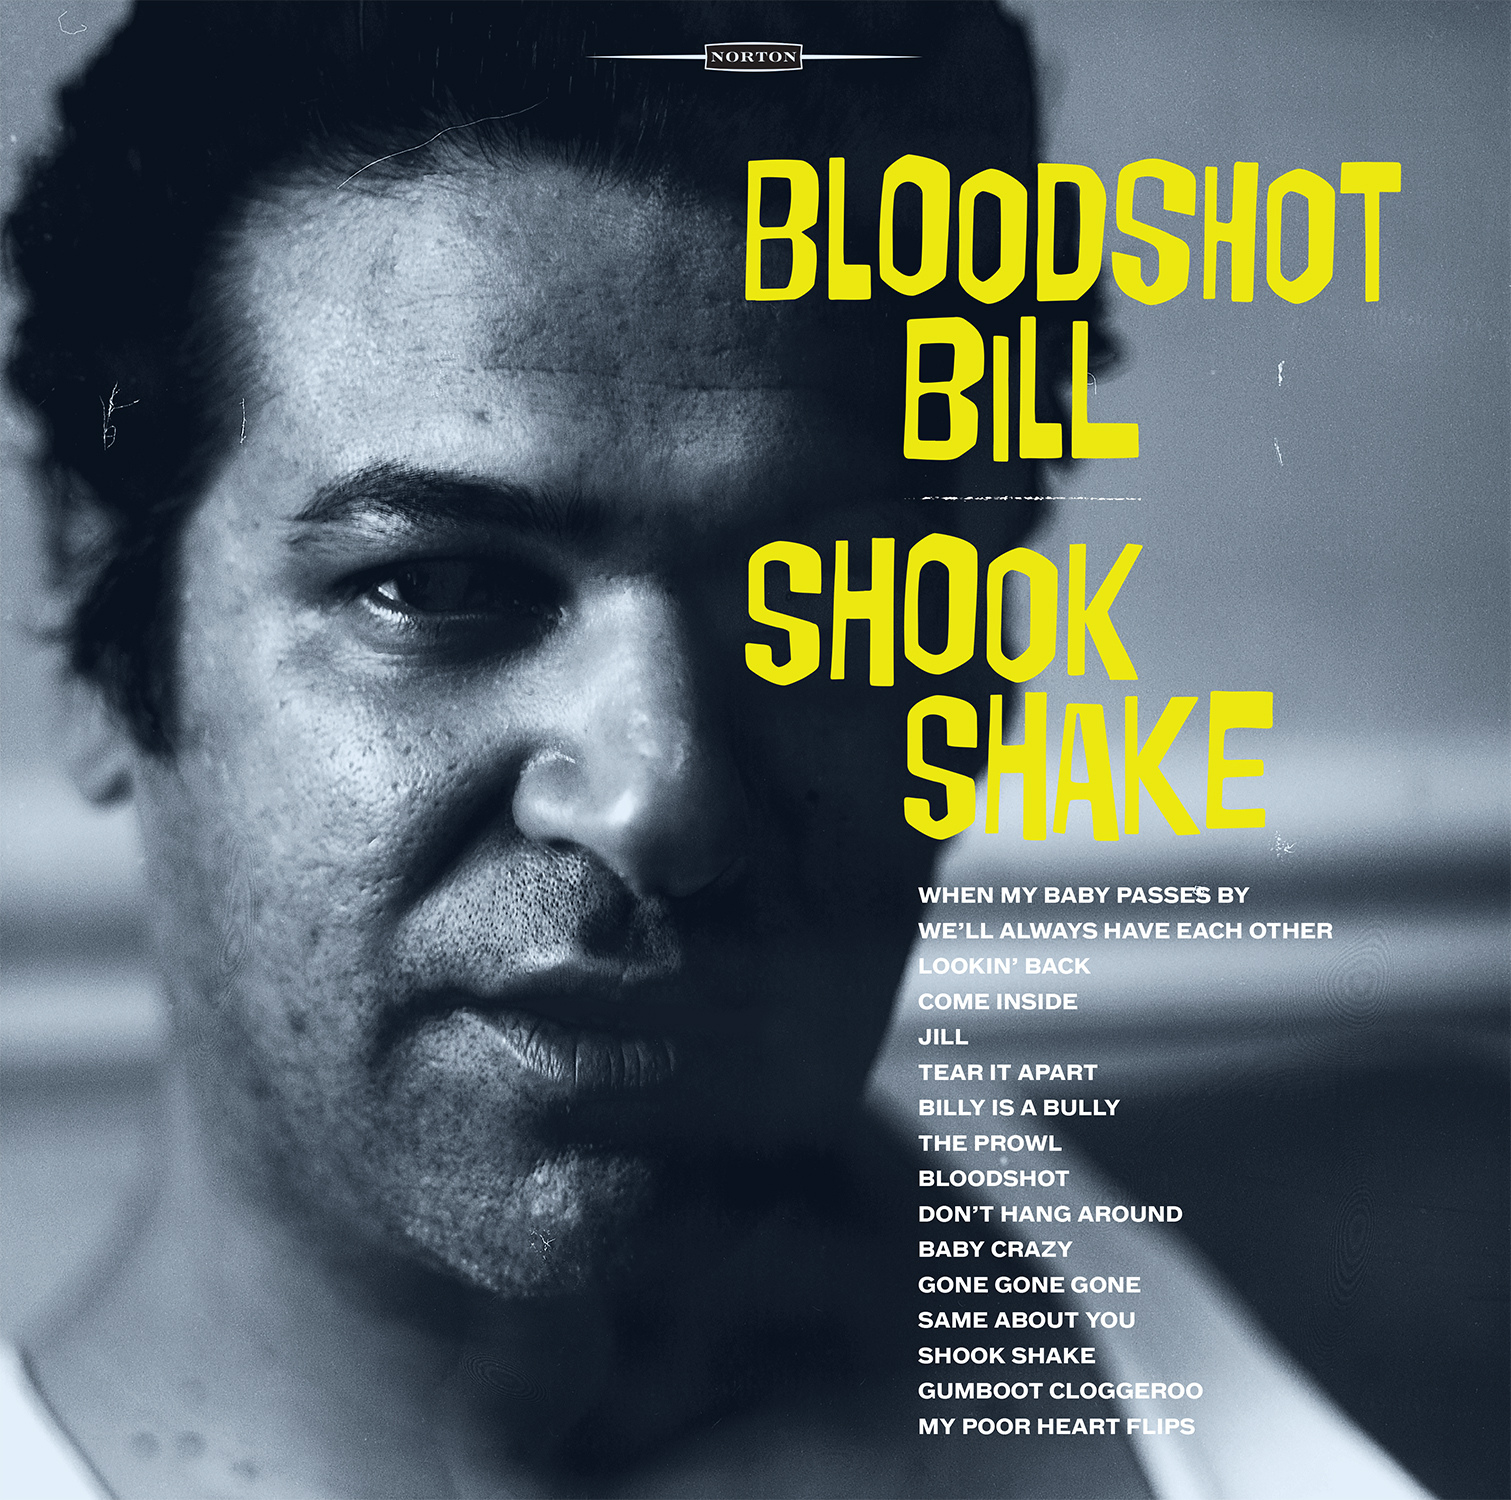 Bloodshot Bill - Shook Shake LP sleeve